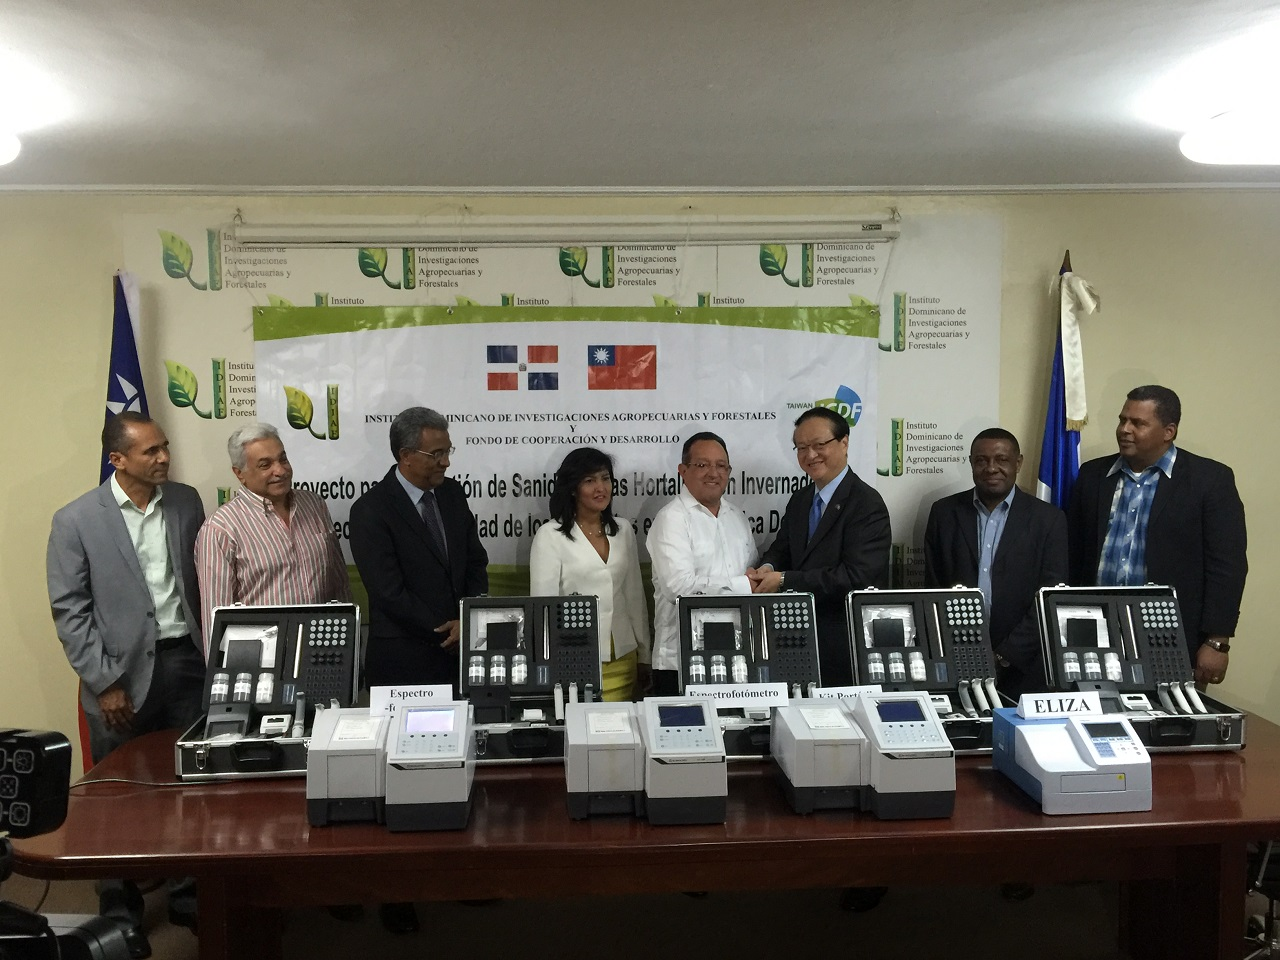 New Pesticide Residue Inspection System to Improve Health of Dominican Republic Citizens